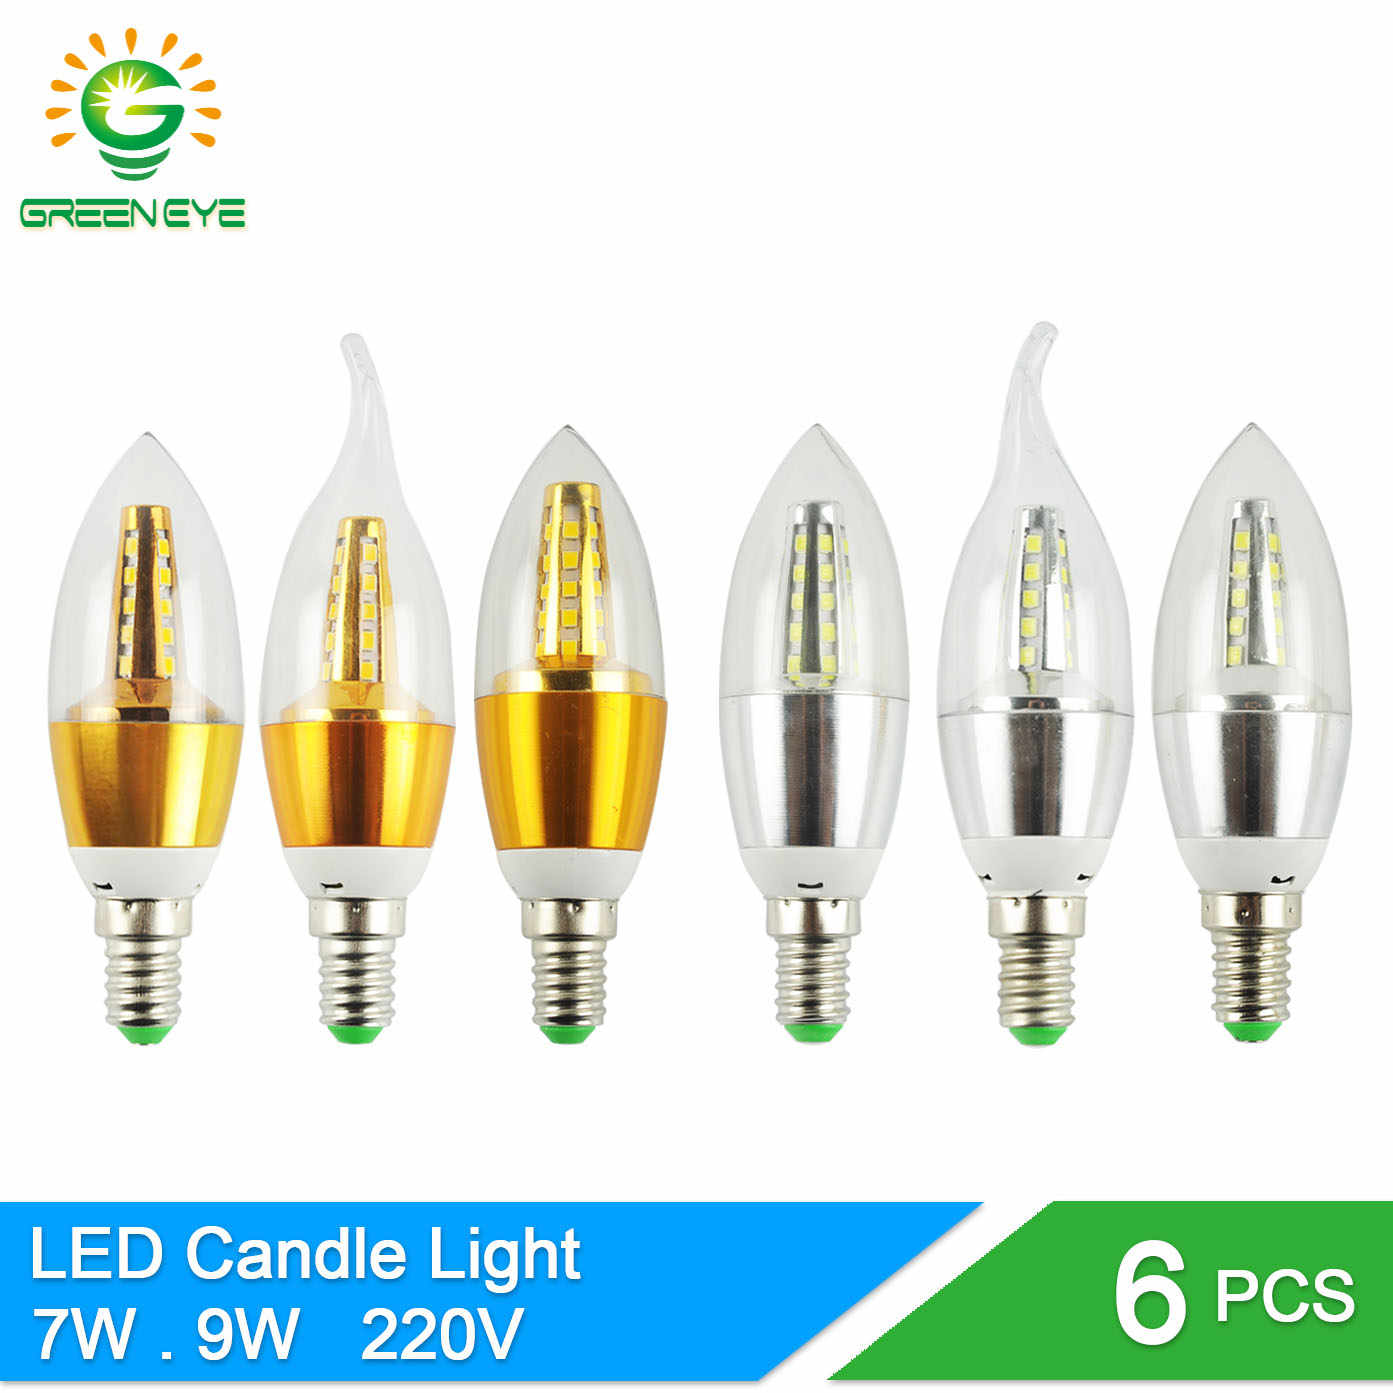 GreenEye 6Pcs E14 LED Candle Bulb Light 7w 9w Aluminum LED Lamp 220V Golden Silver Cool Warm White Ampoule Lampara Vintage Retro